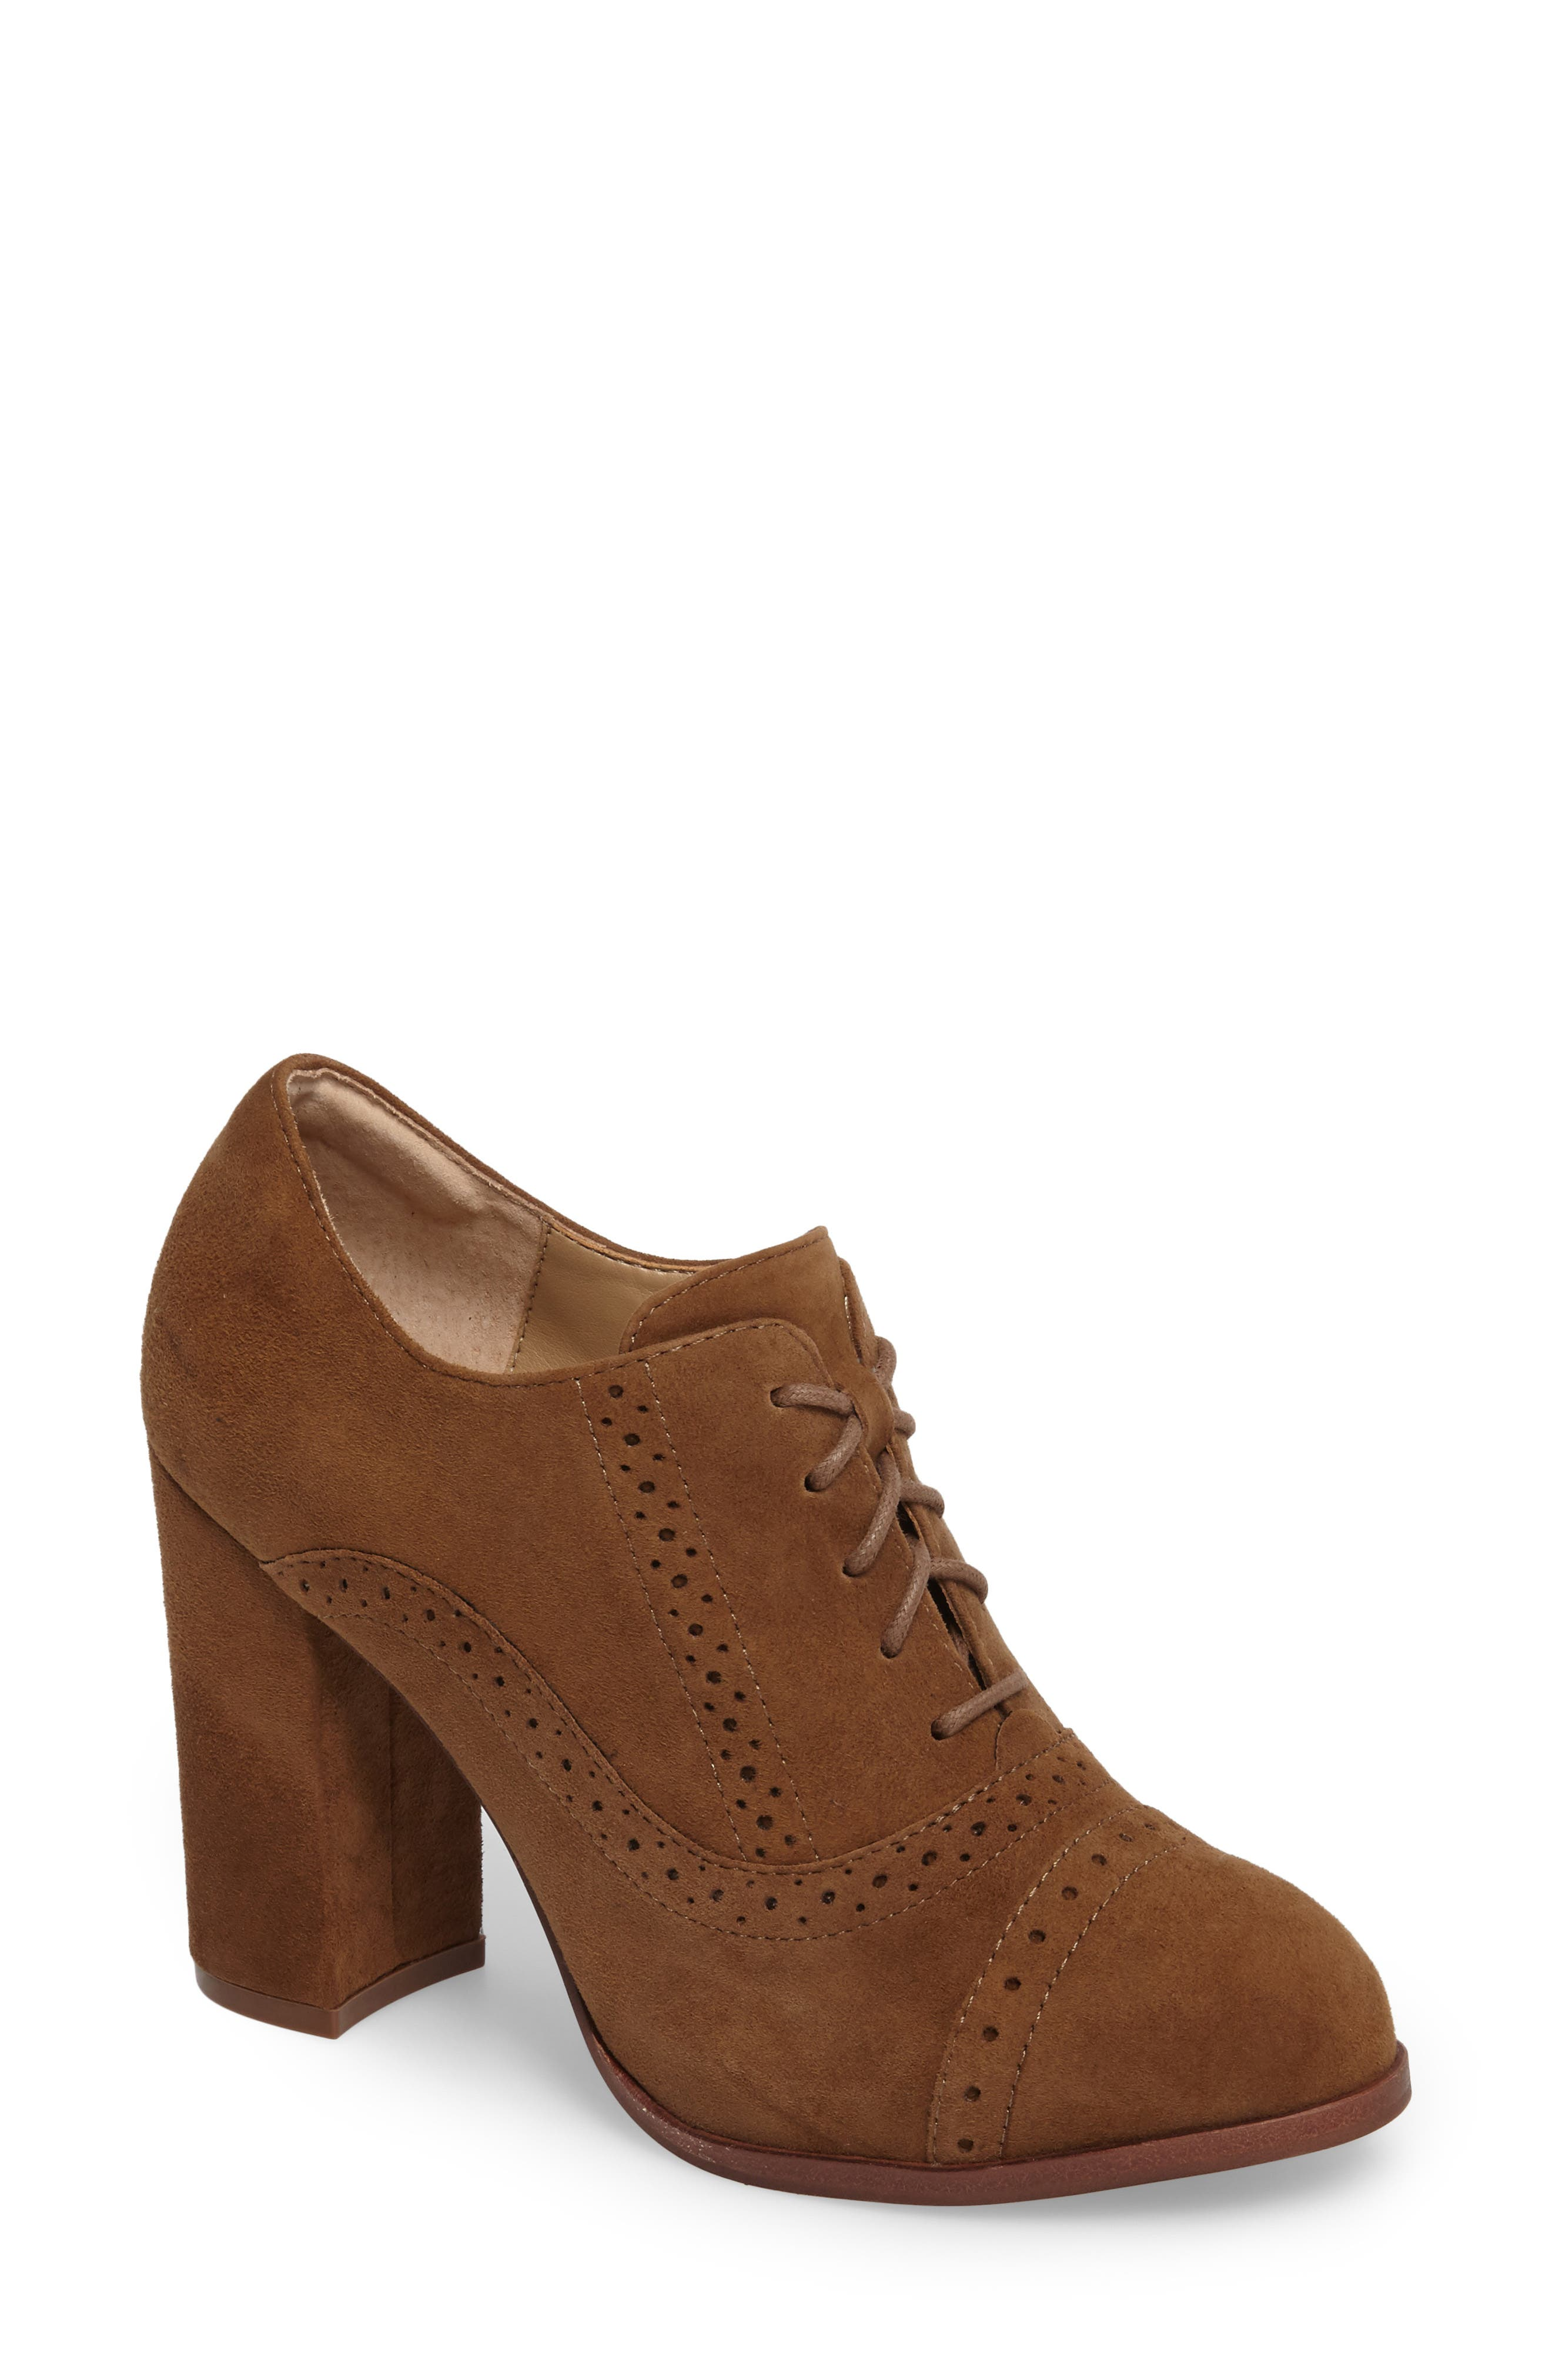 ISOLÁ, Holli Oxford Pump, Main thumbnail 1, color, LIGHT BROWN SUEDE